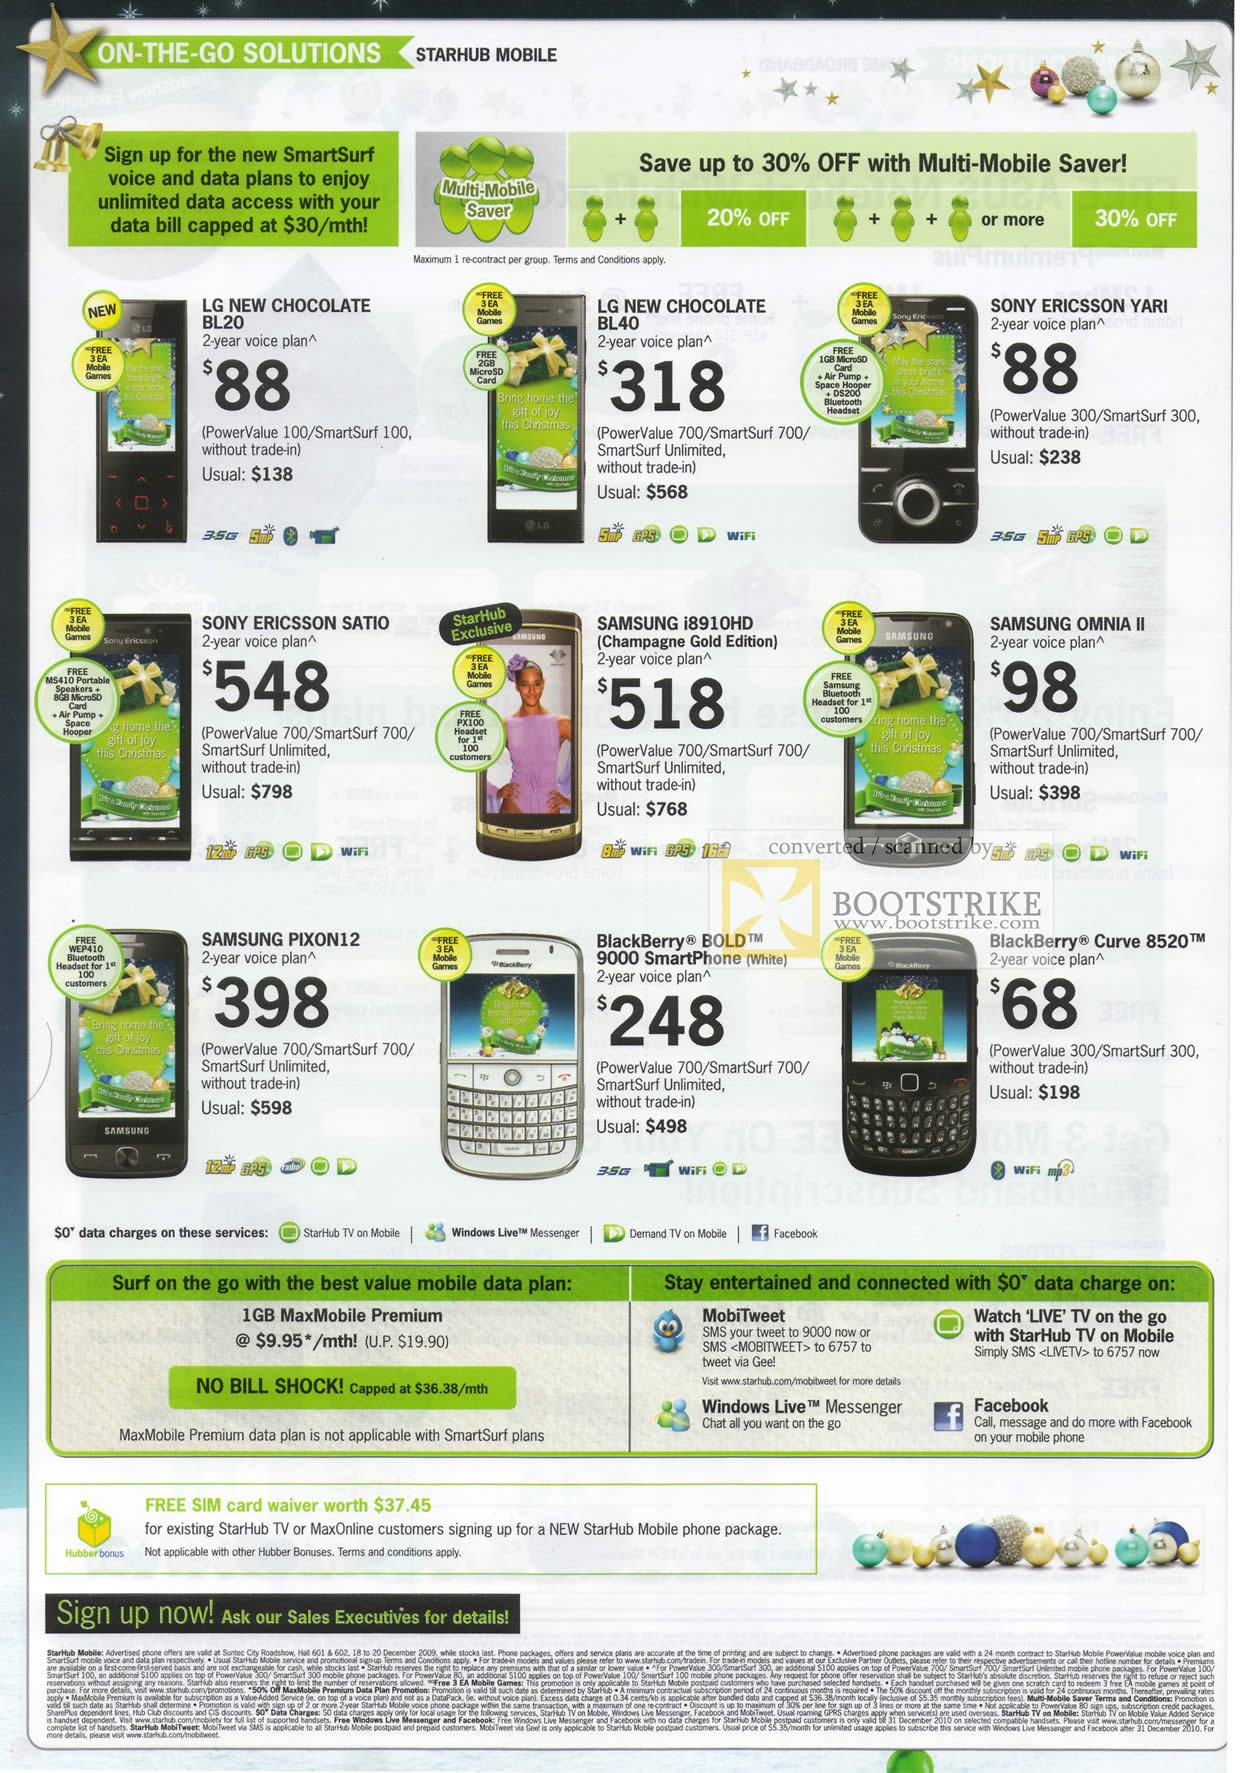 Sony ericsson mobile pictures price list Cached